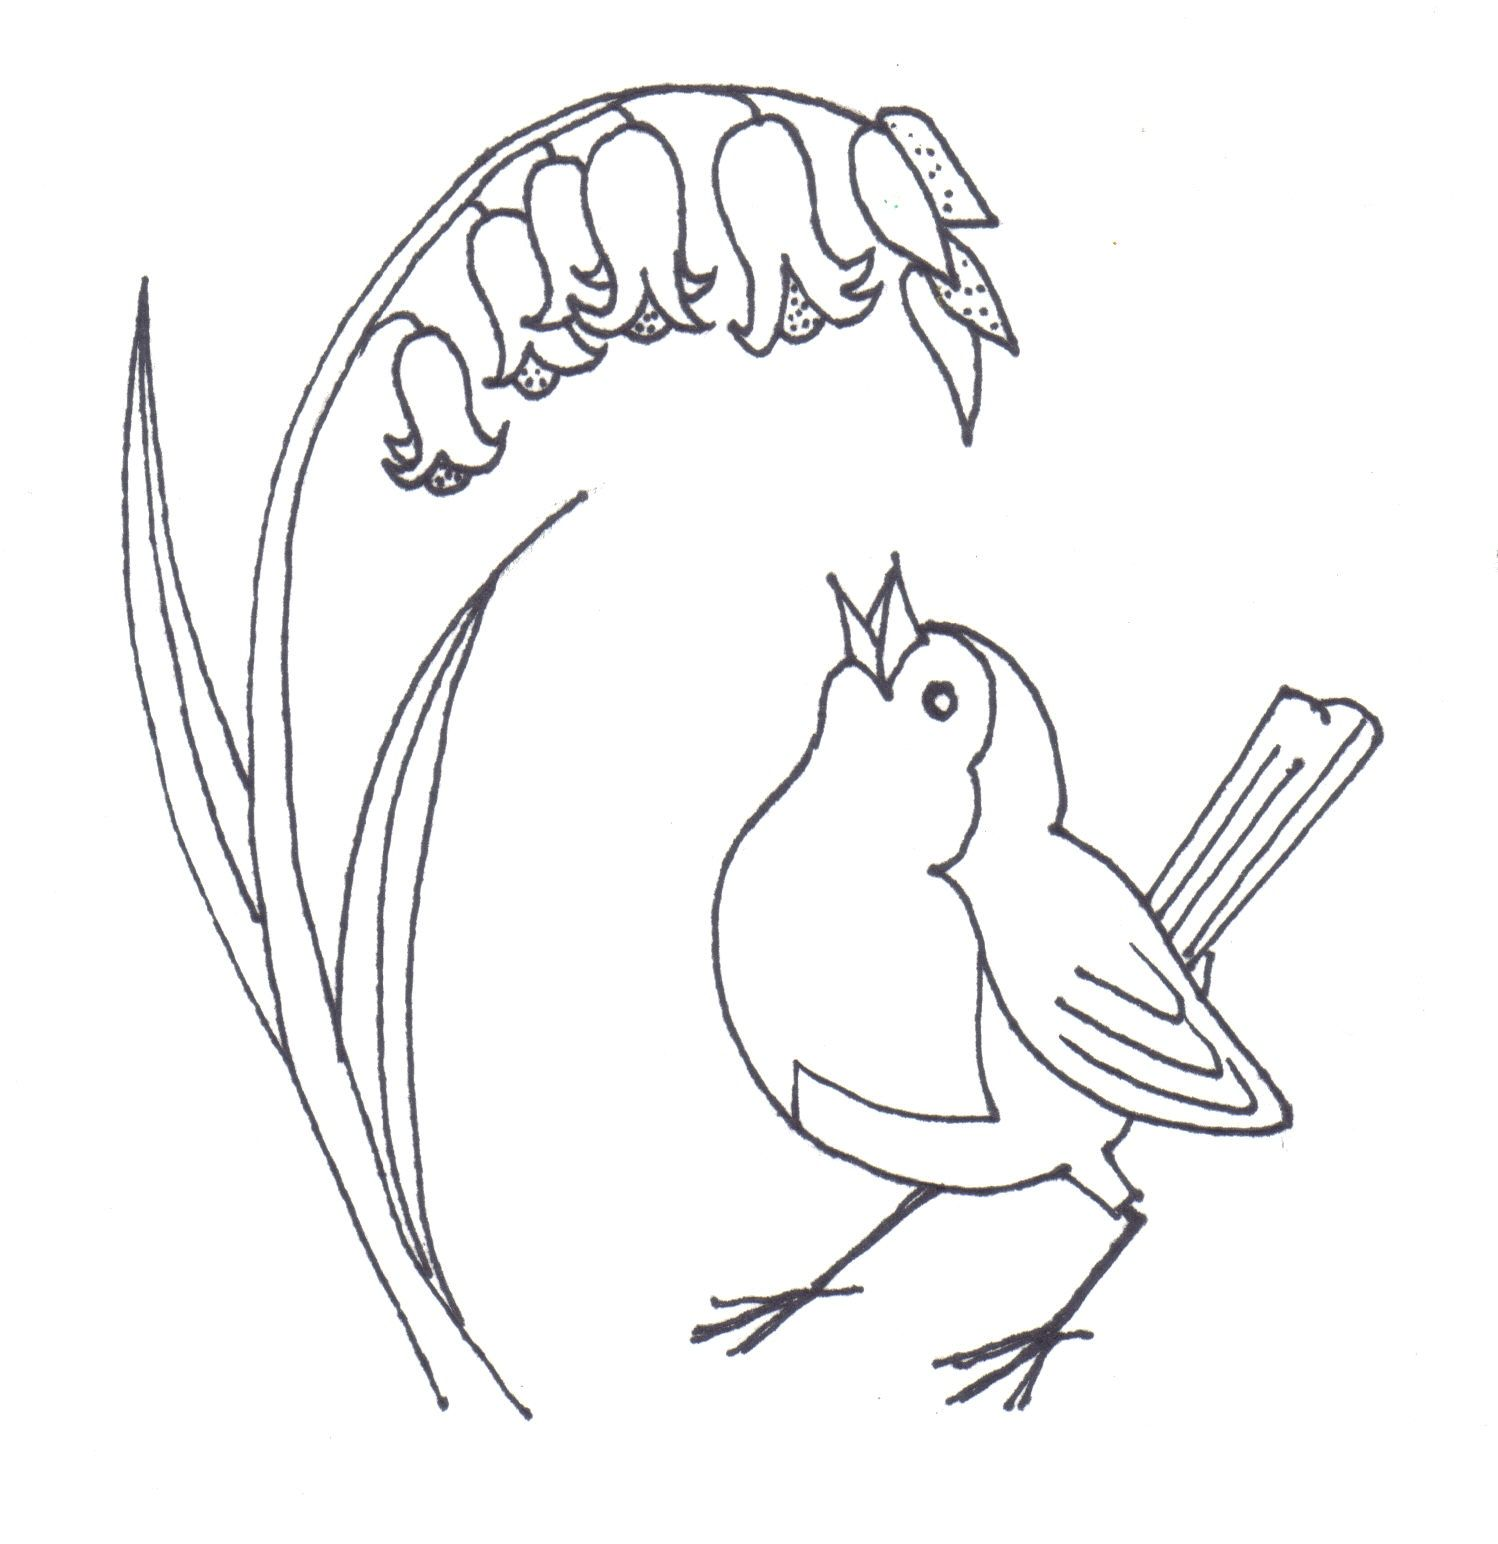 Simple Bird Line Art : Simple bird line drawing